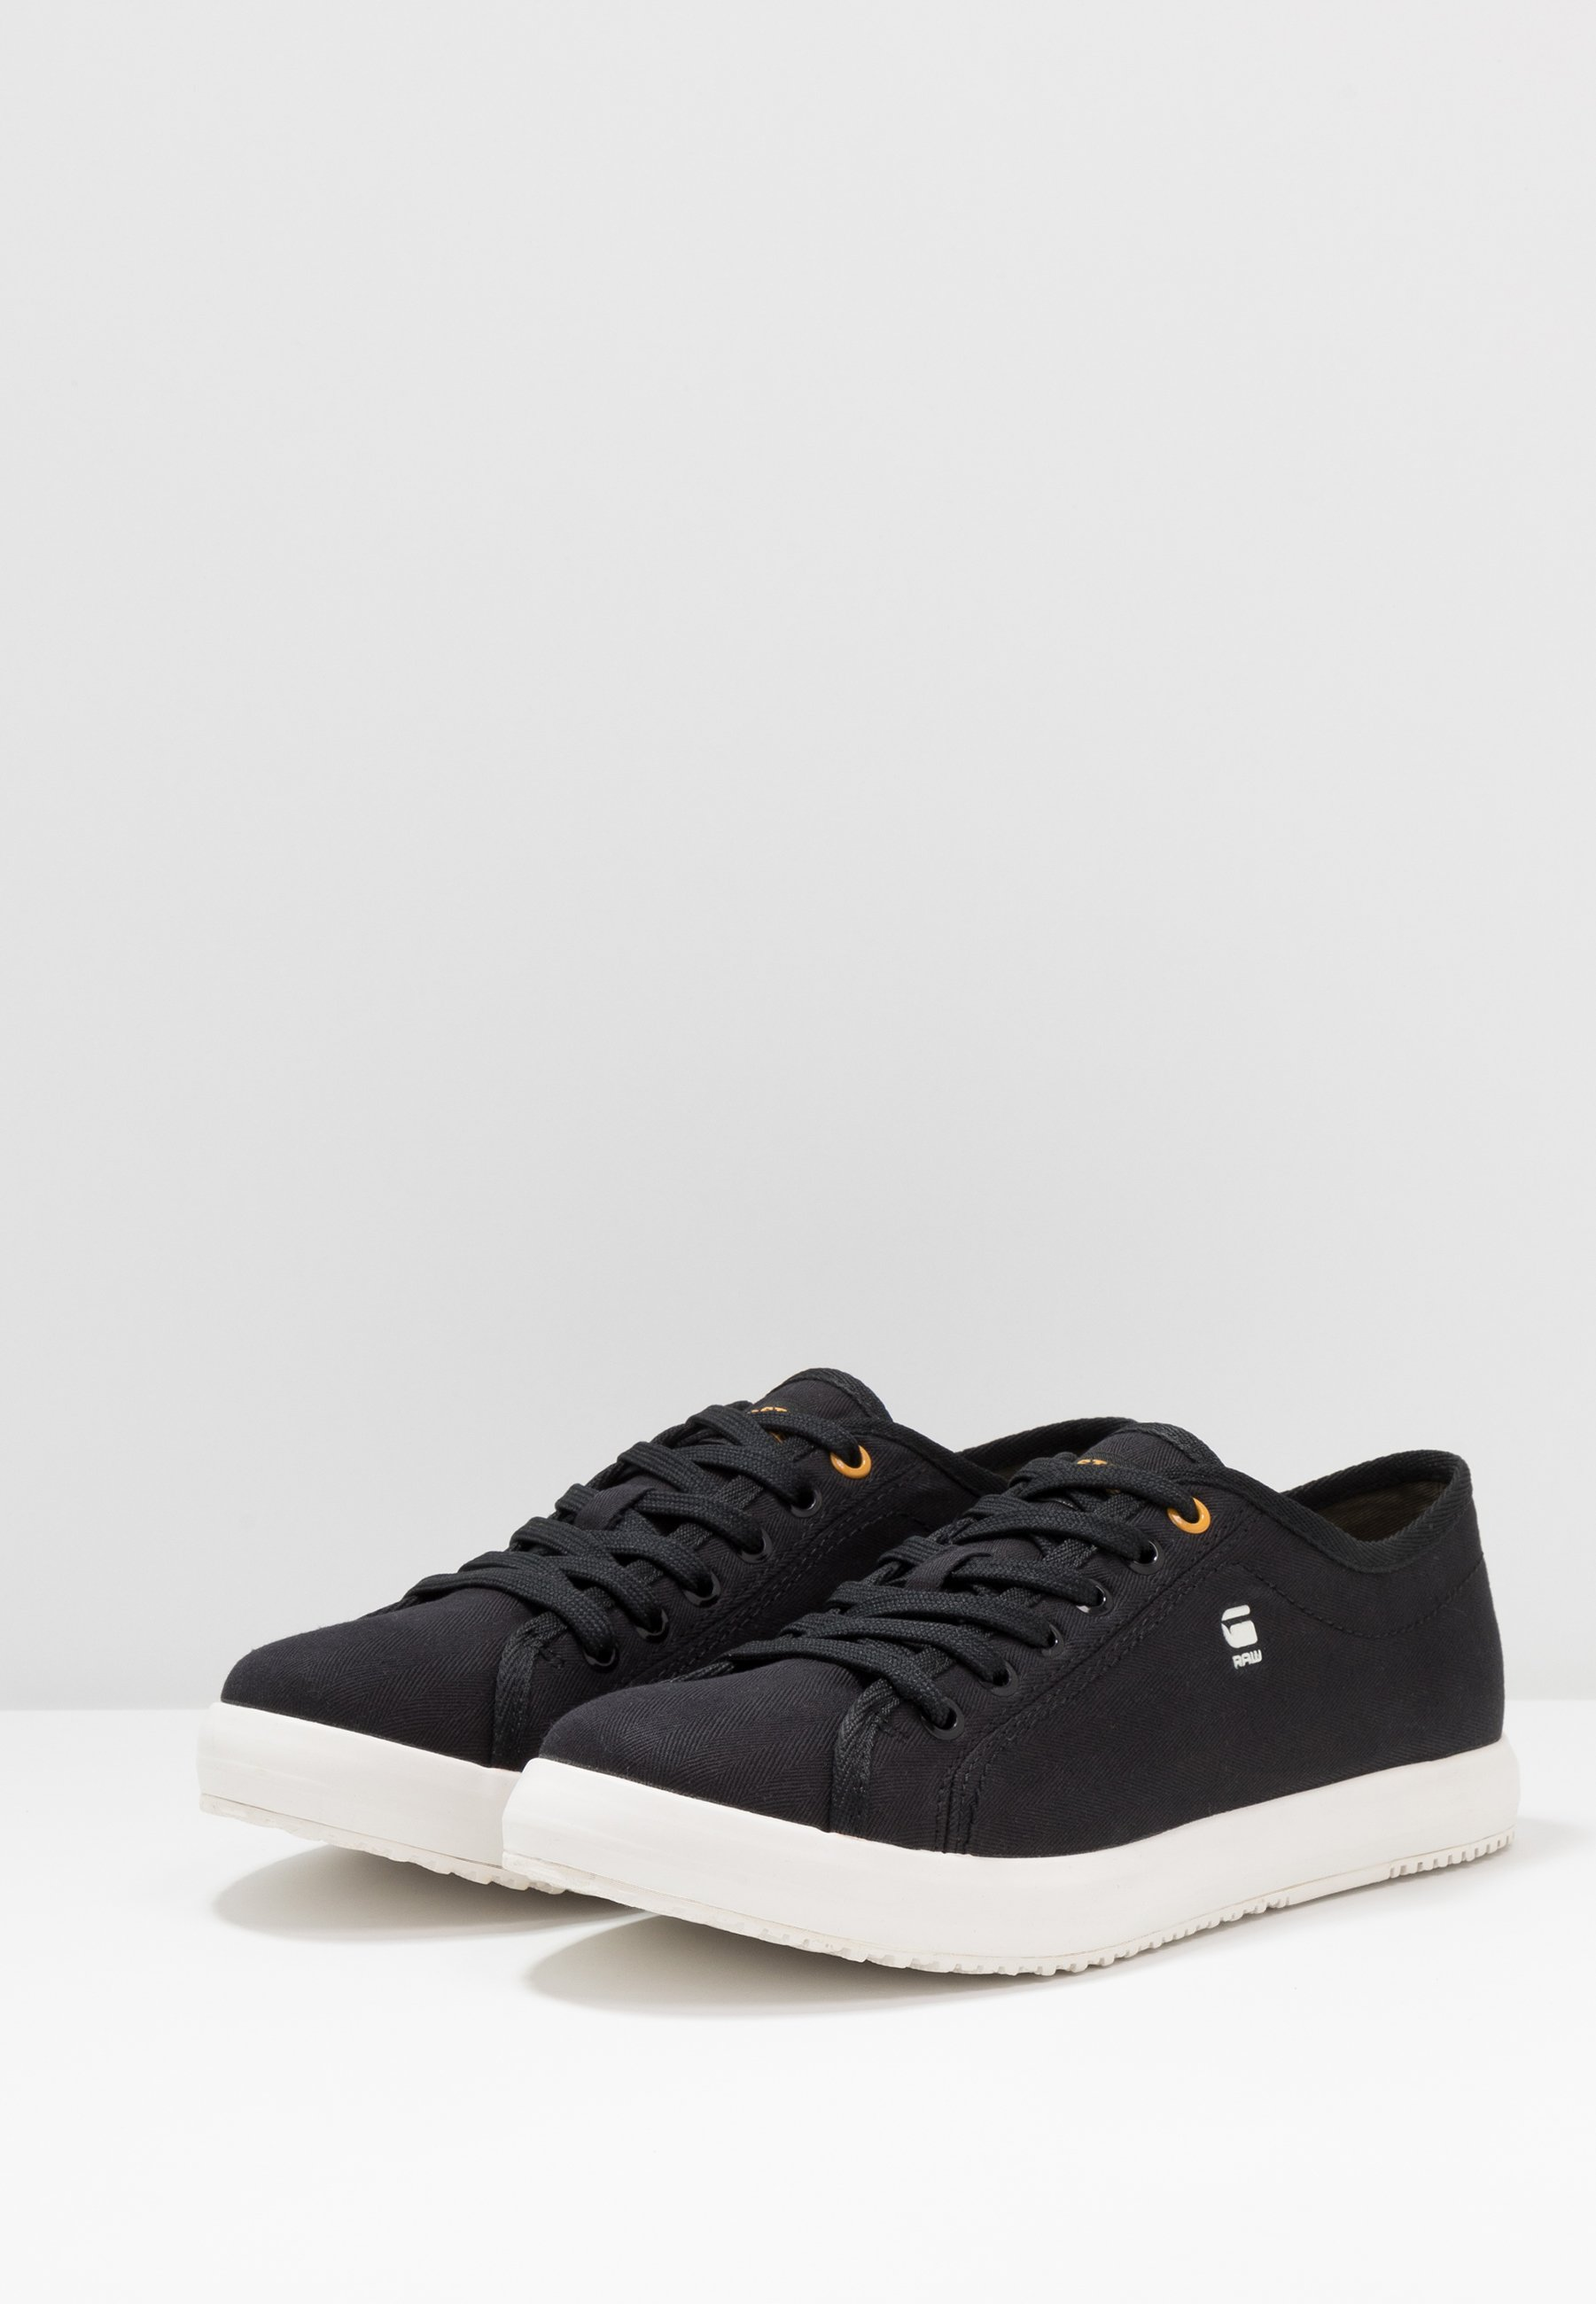 G-star Kendo Ii - Trainers Black